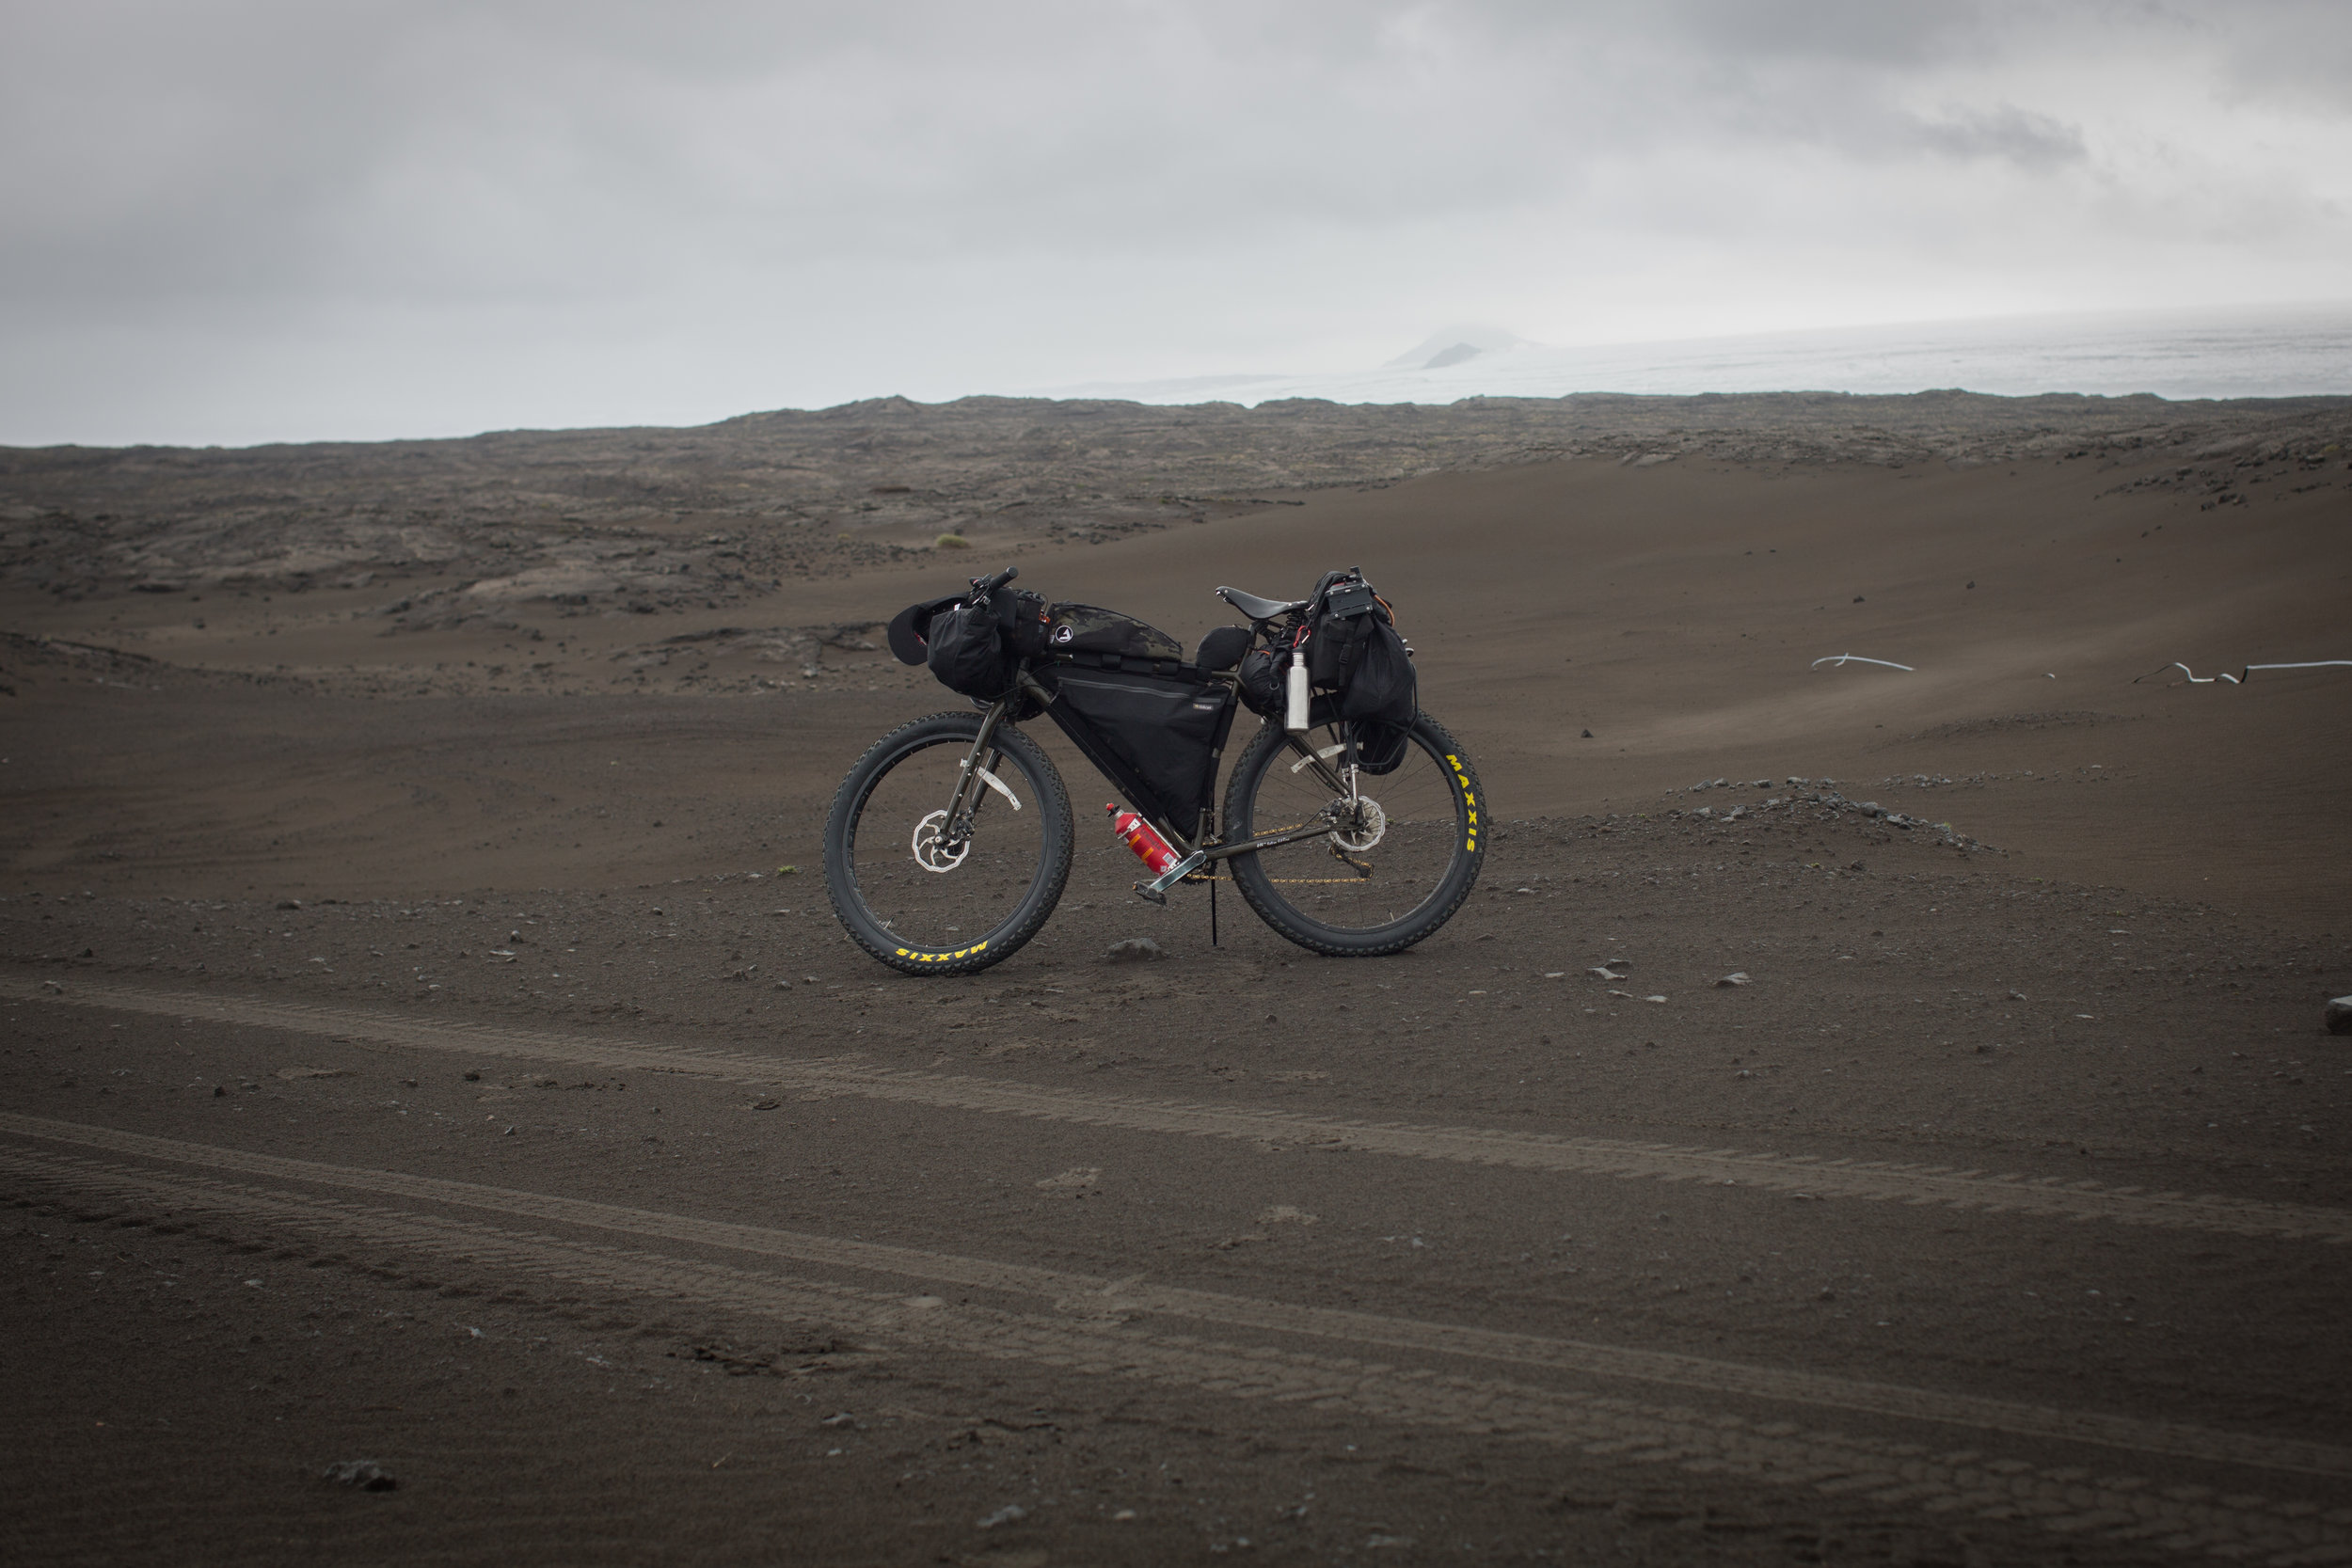 bikepacking, bikepacking blog, bicycle touring, bicycle touring blog, jack mac, jack macgowan, bicycle touring apocalypse, travel, travel blog, blogger, surly, surly bikes, fat bike, 29er, maxxis, car sick designs, atm handmade goods, j paks, wildcat gear, carradice, carradice super c, iceland, visit iceland, glaciers, berghaus, blacks outdoors, iceland midnight sun, midnight sun